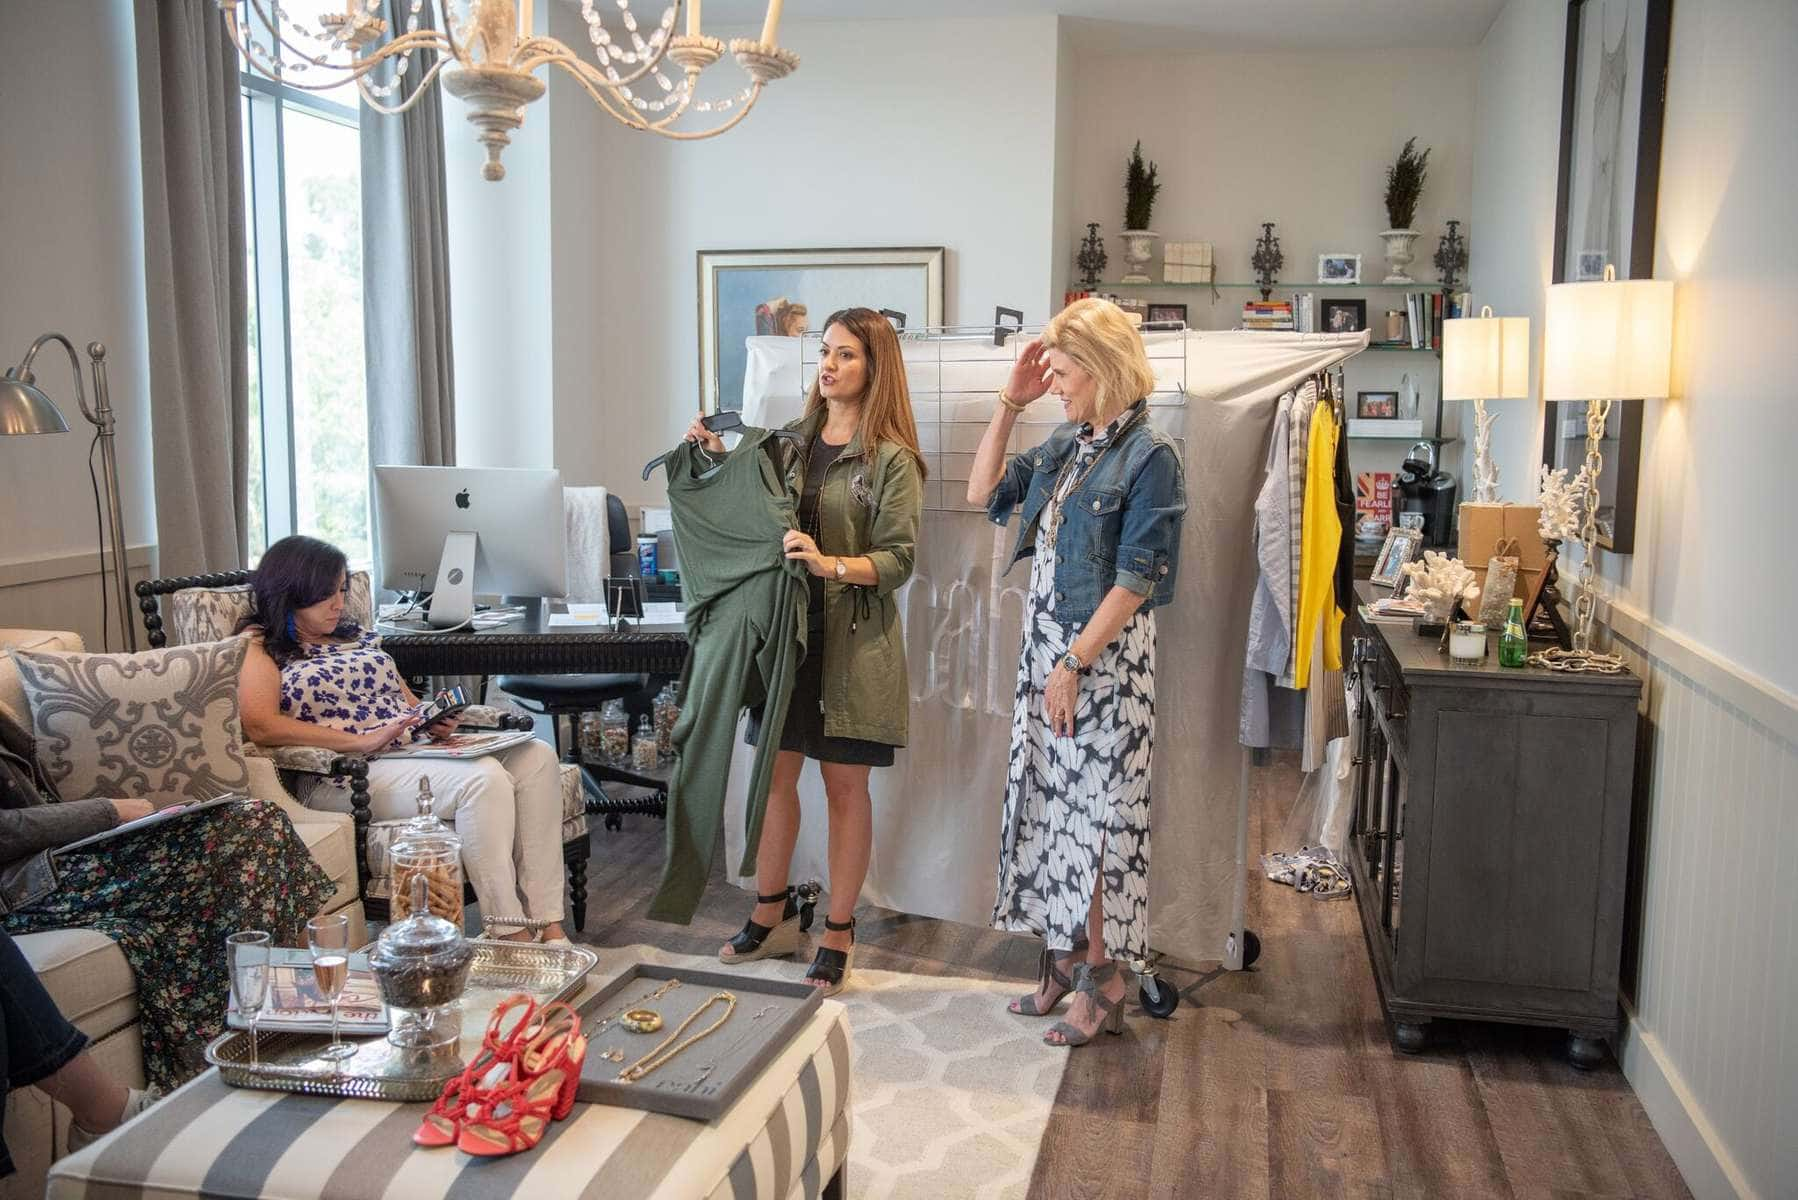 cabi bloggers day 5 8 2018 1629 preview